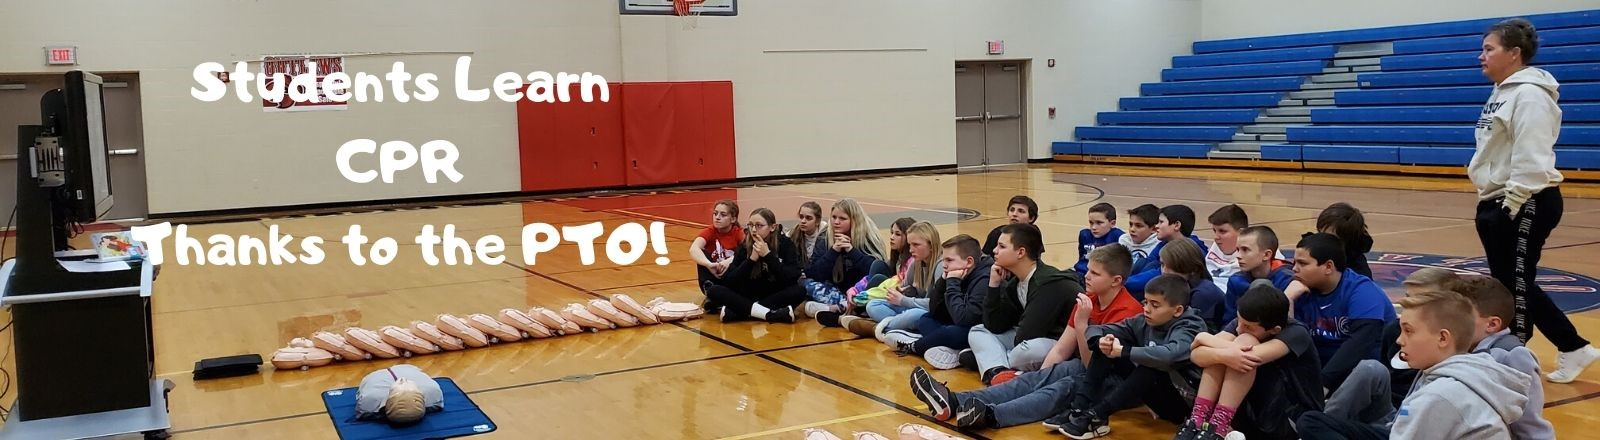 Students Learn CPR thanks to the PTO!